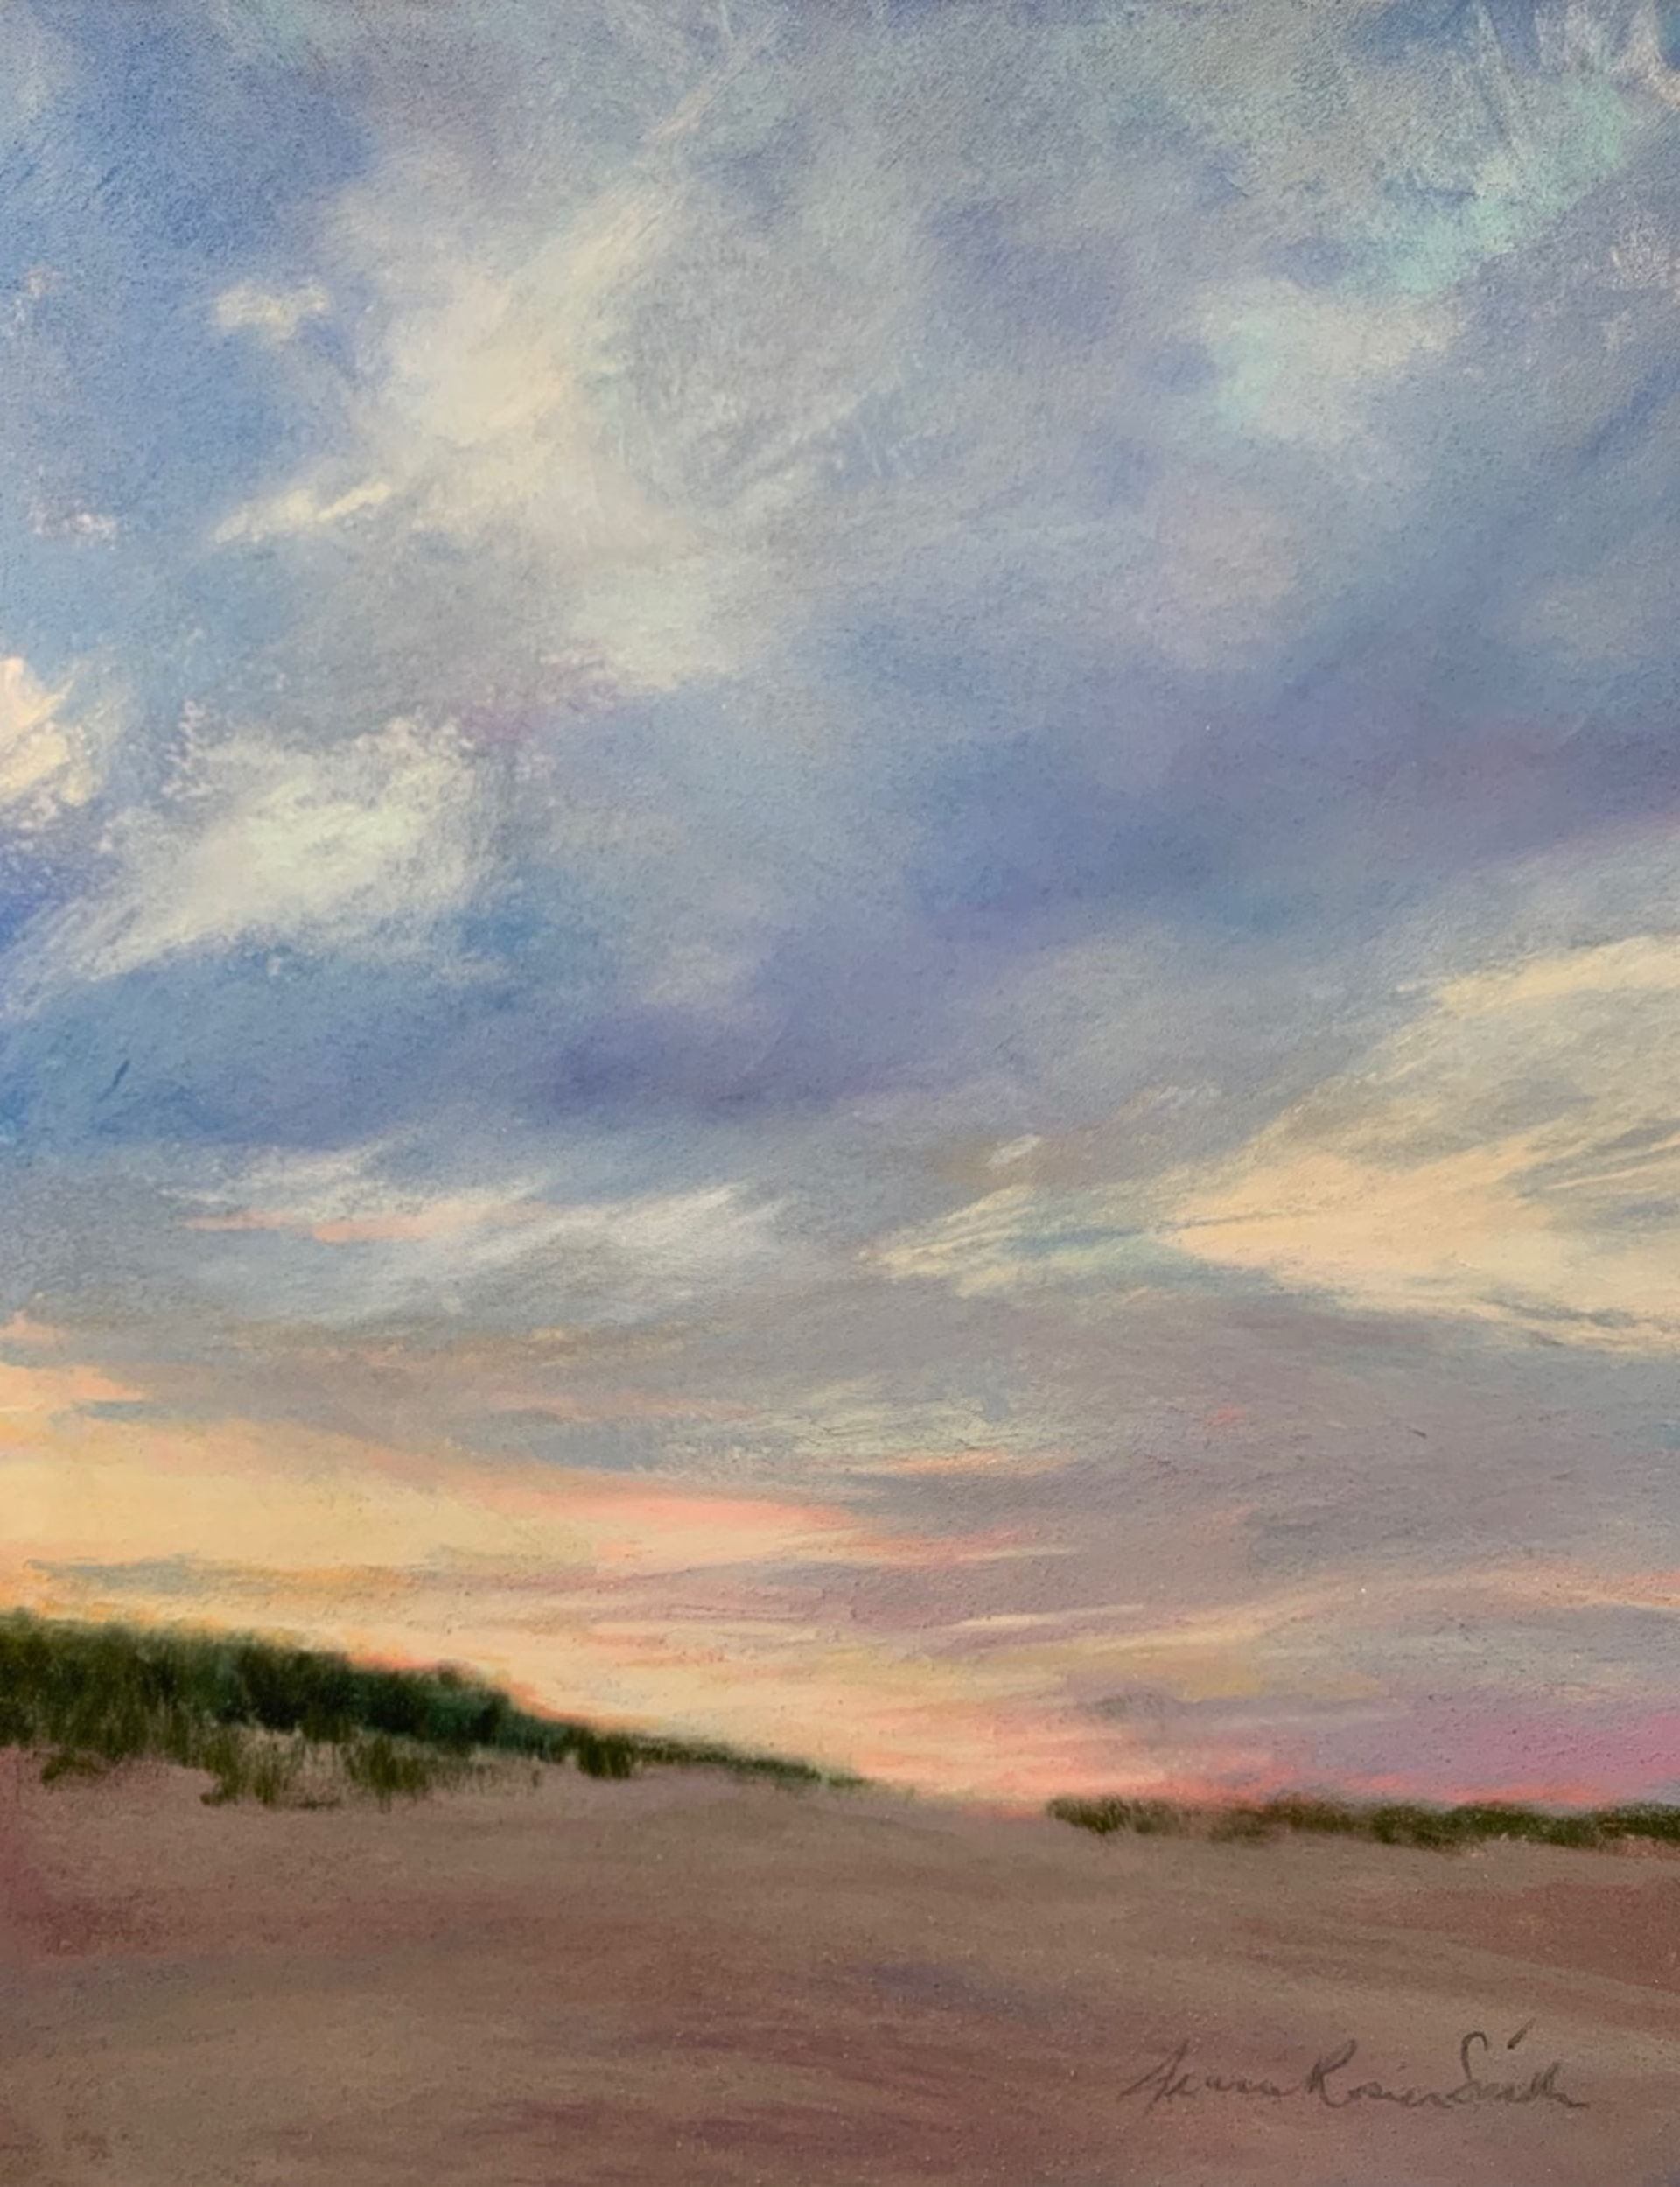 Into the Distance by Jeanne Rosier Smith